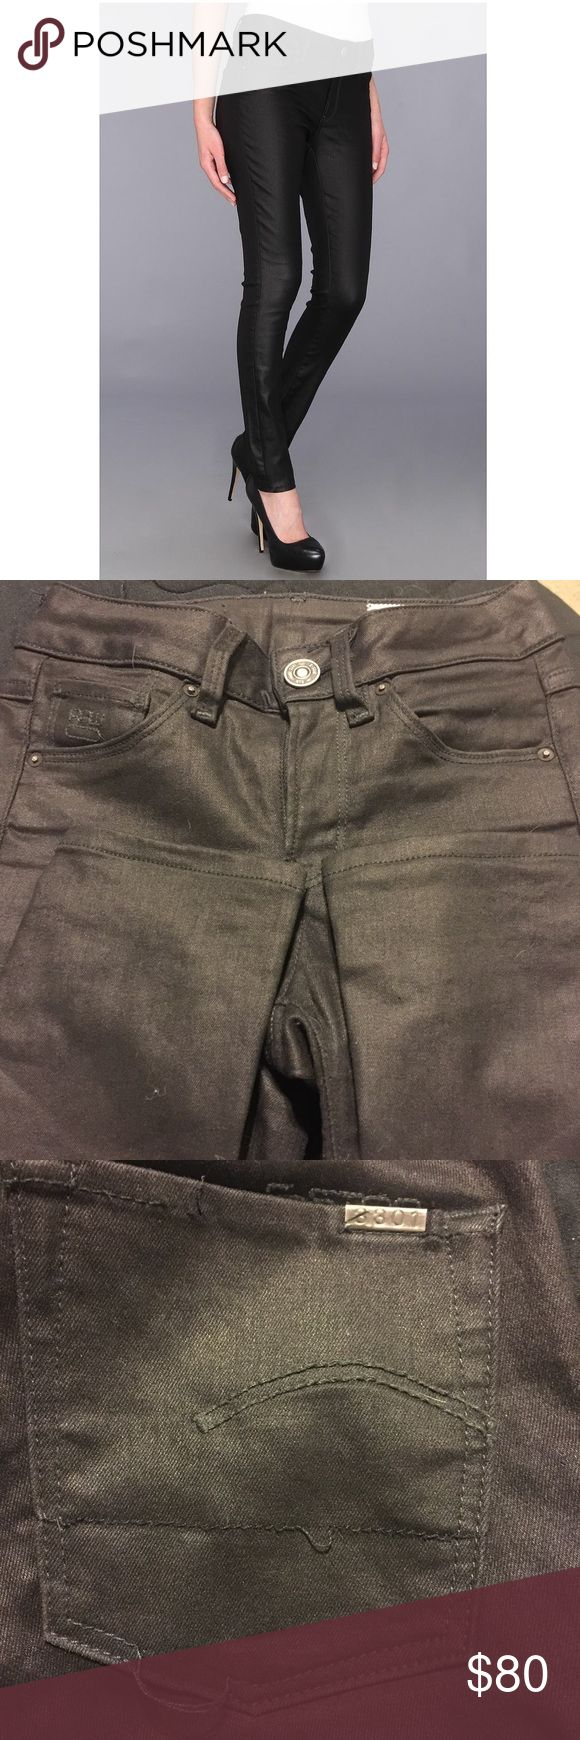 G Star RAW 3301 Jeggings G Star RAW 3301 wet look jegging. In great condition minus the back right pocket. The stitching is coming undone, shown in 3rd photo. Size runs small. Price negotiable. G-Star Jeans